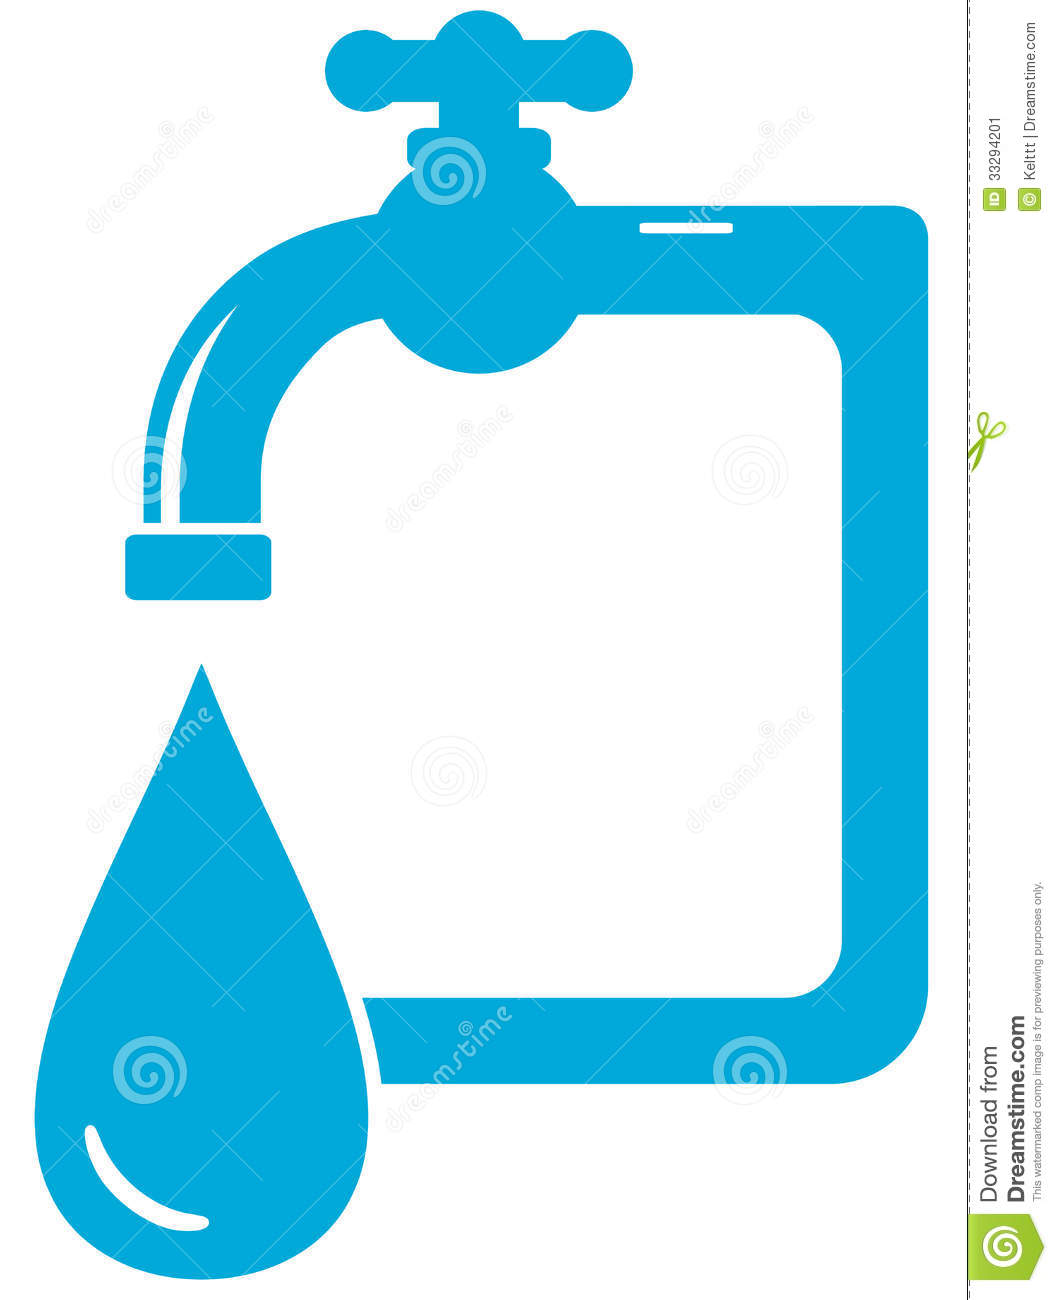 Stock Image Water Icon Tap Faucet Drop Blue Isolated Image33294201 on plumbing service logos